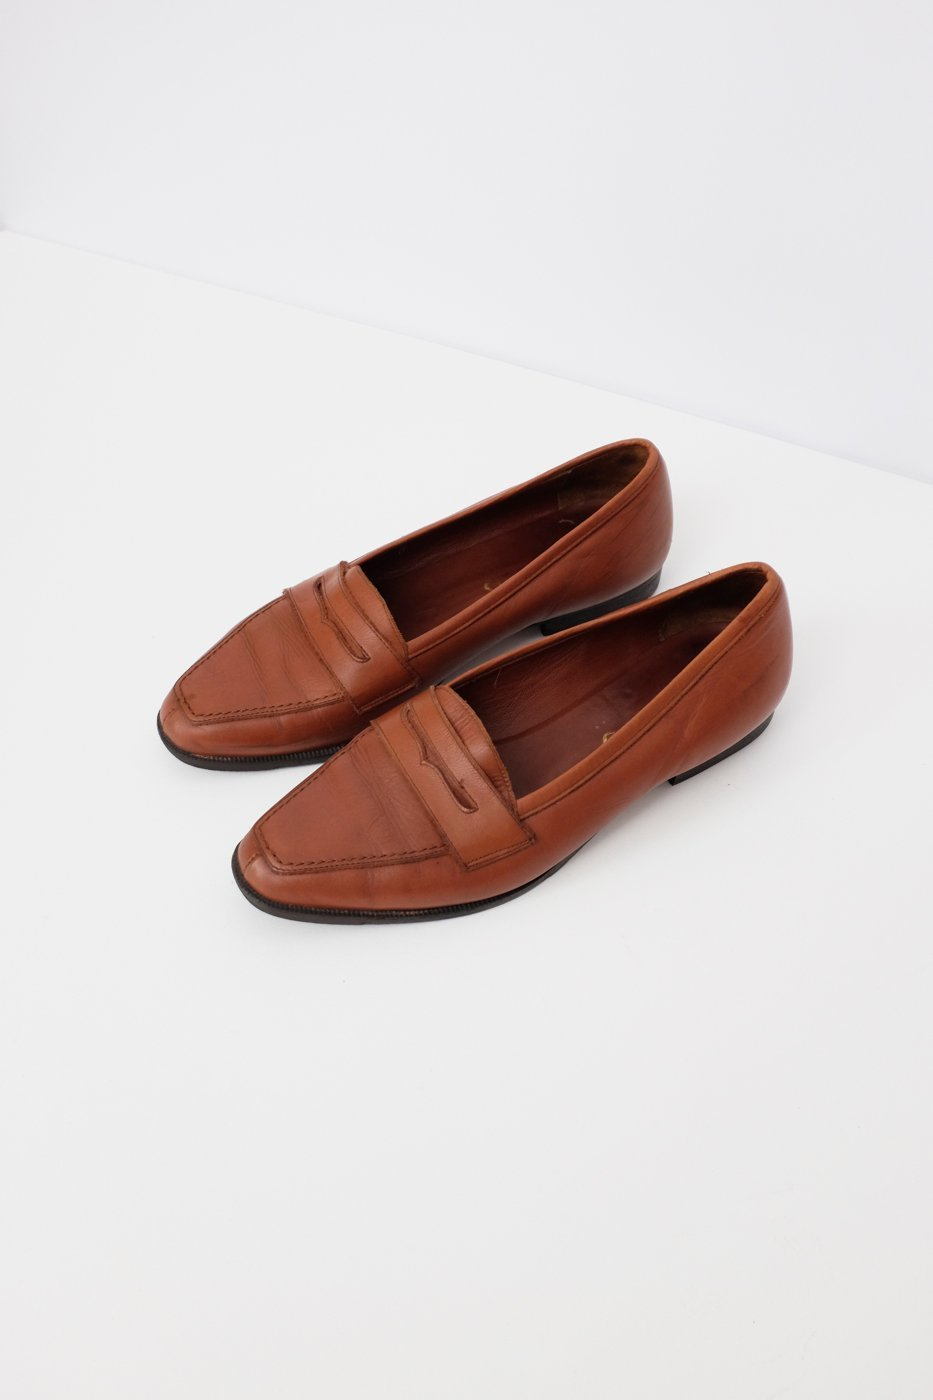 0001_COGNAC 38 LEATHER SLIPPER